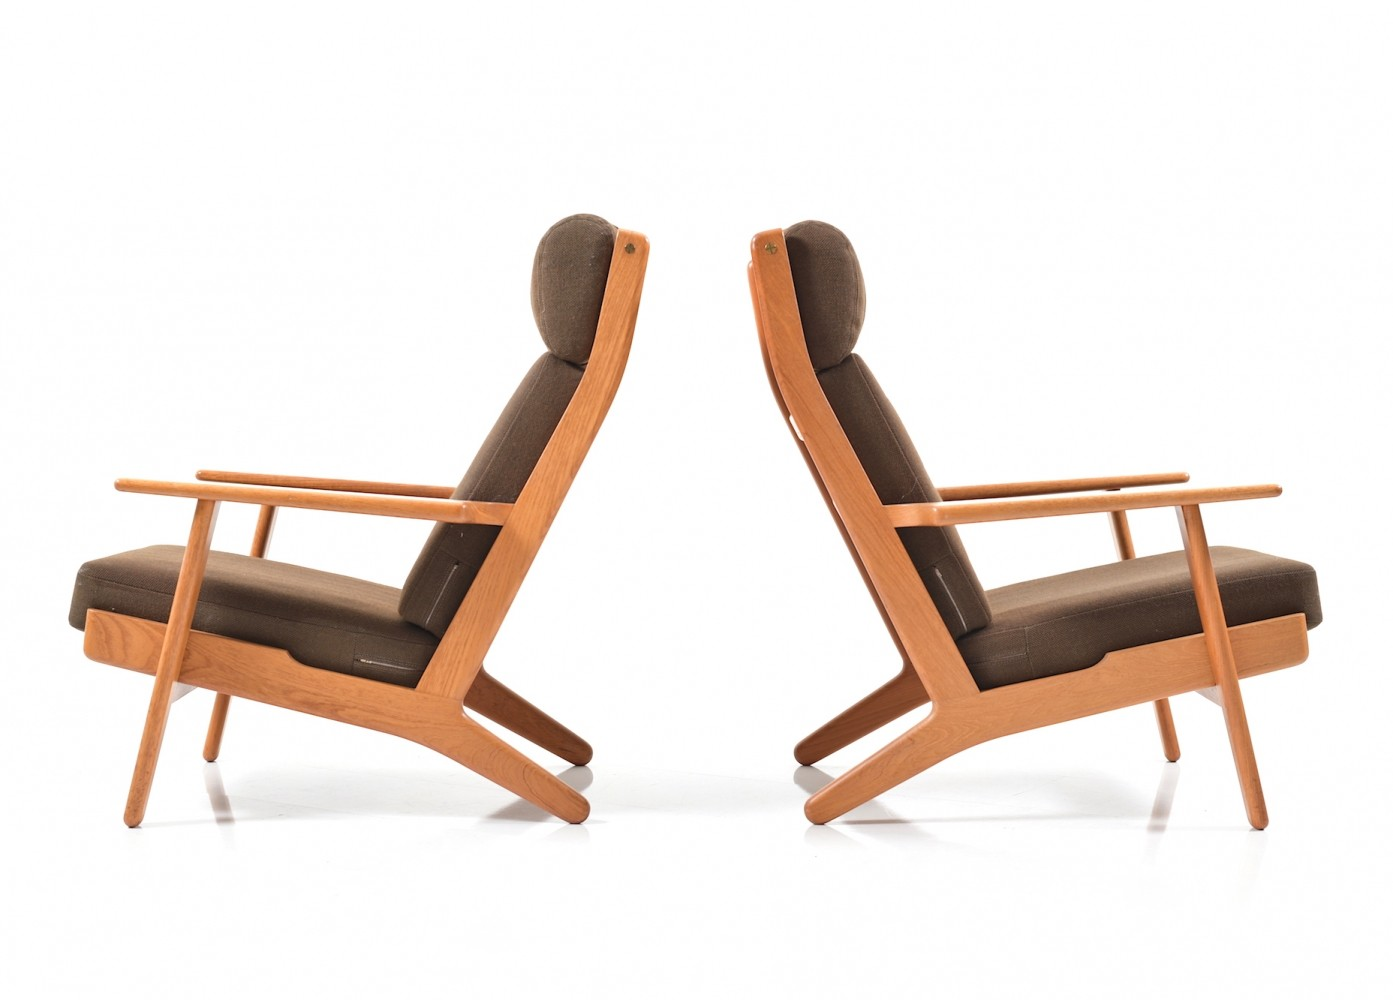 GE 290 Pair of Highback Lounge Chairs in Teak by Hans J Wegner